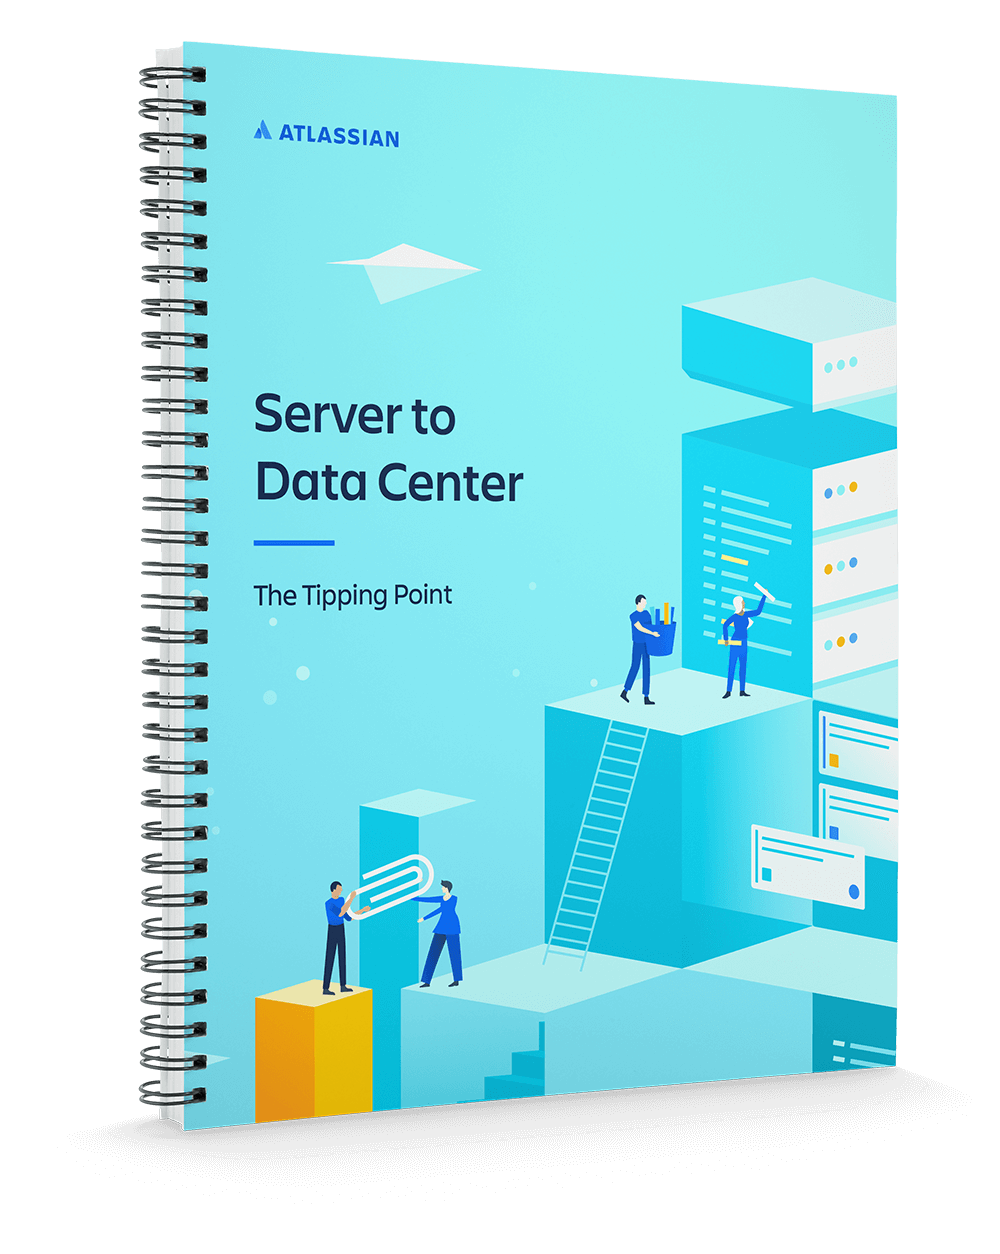 Server to Data Center cover